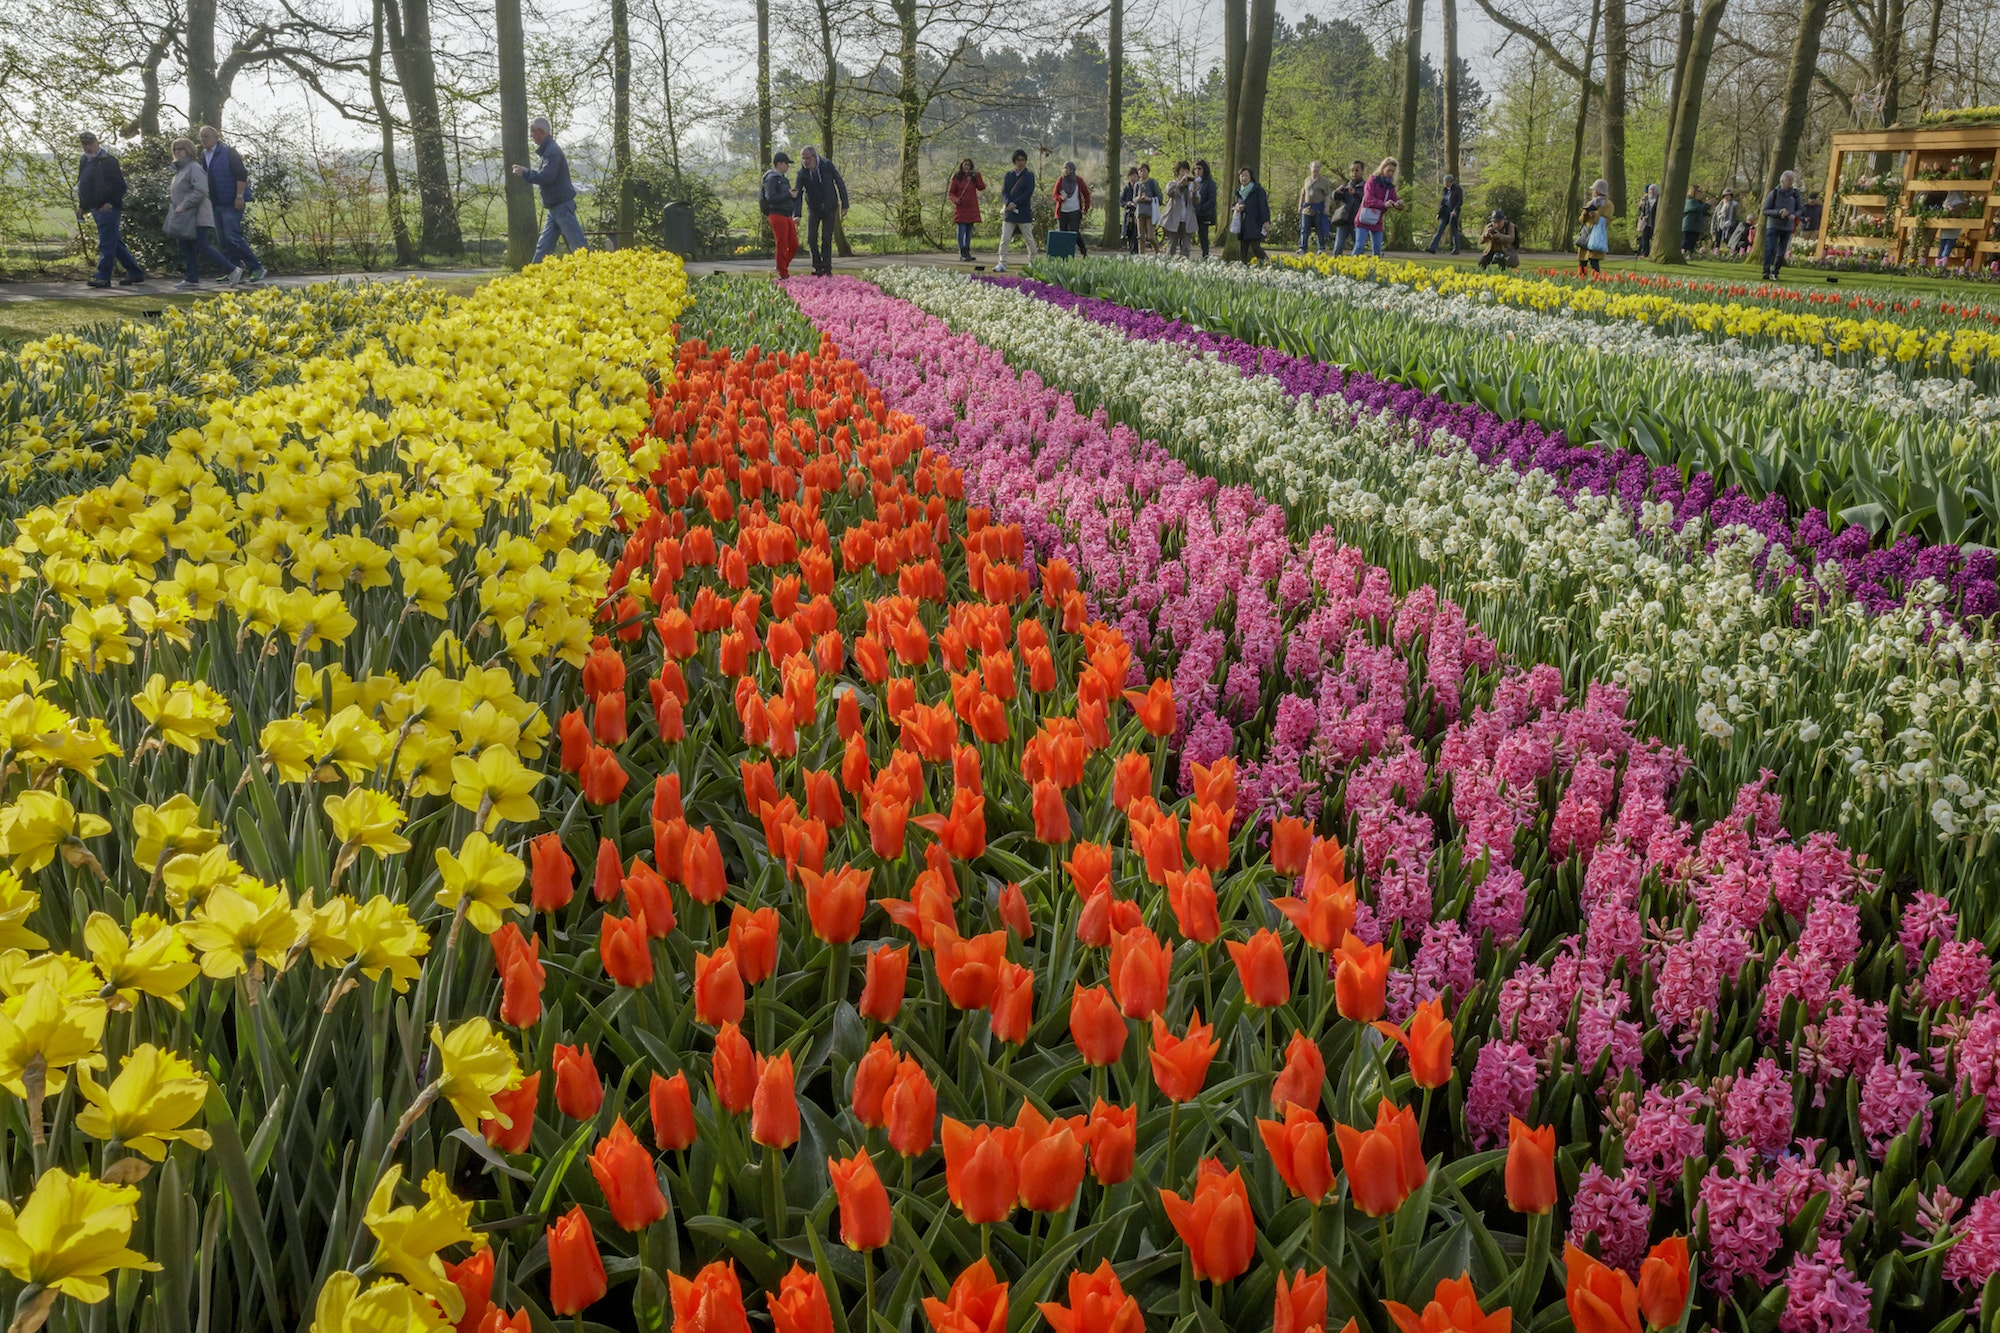 Keukenhof Gardens consists of more than 79 acres filled with800 varieties of tulips.